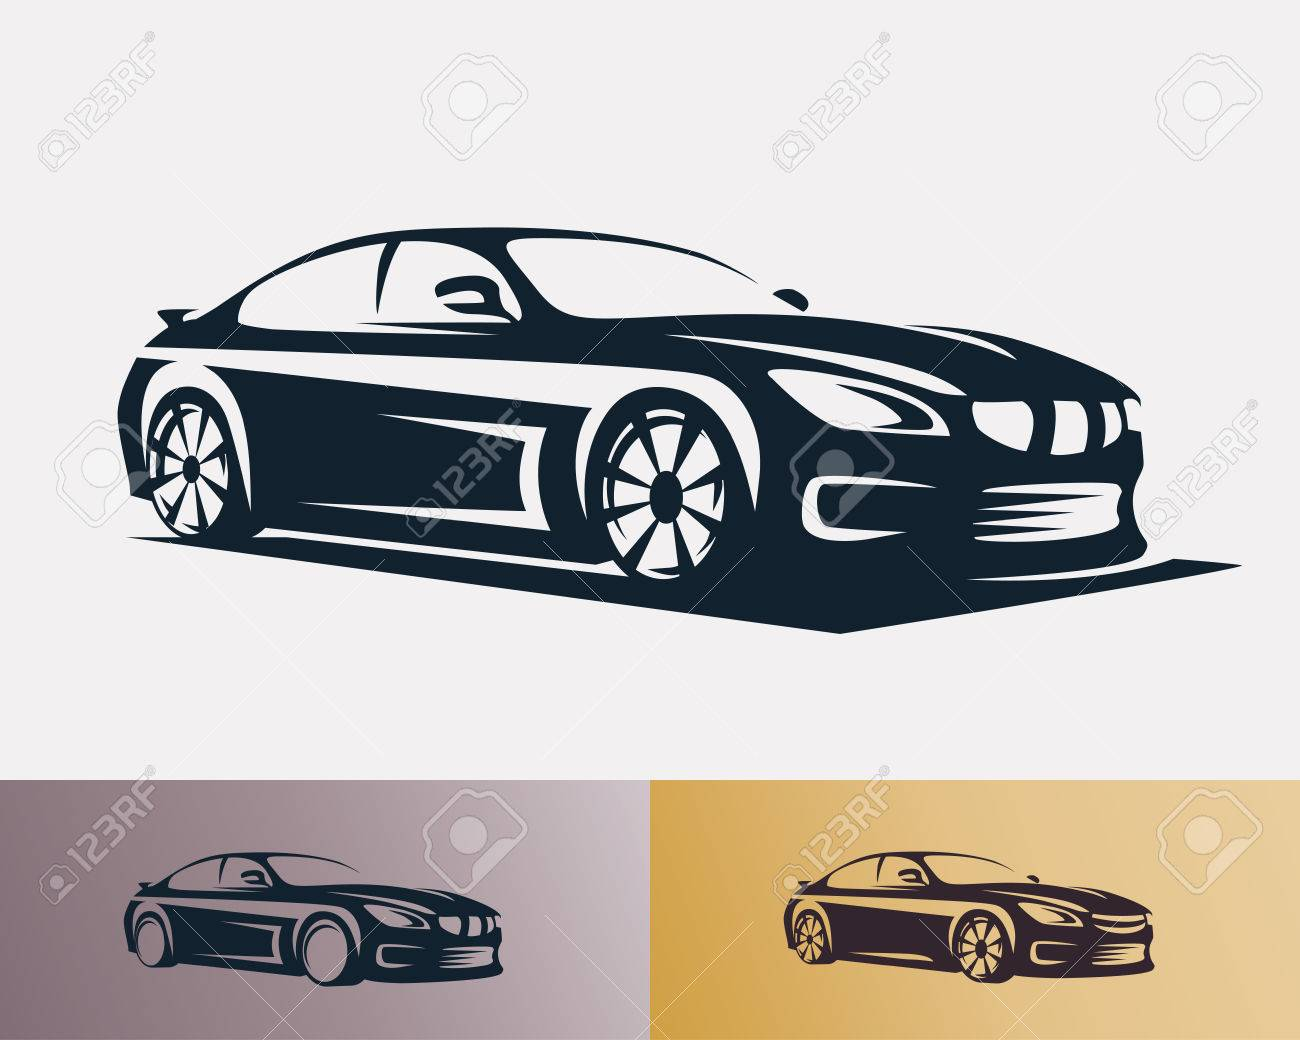 Race car symbol template, stylized vector silhouette